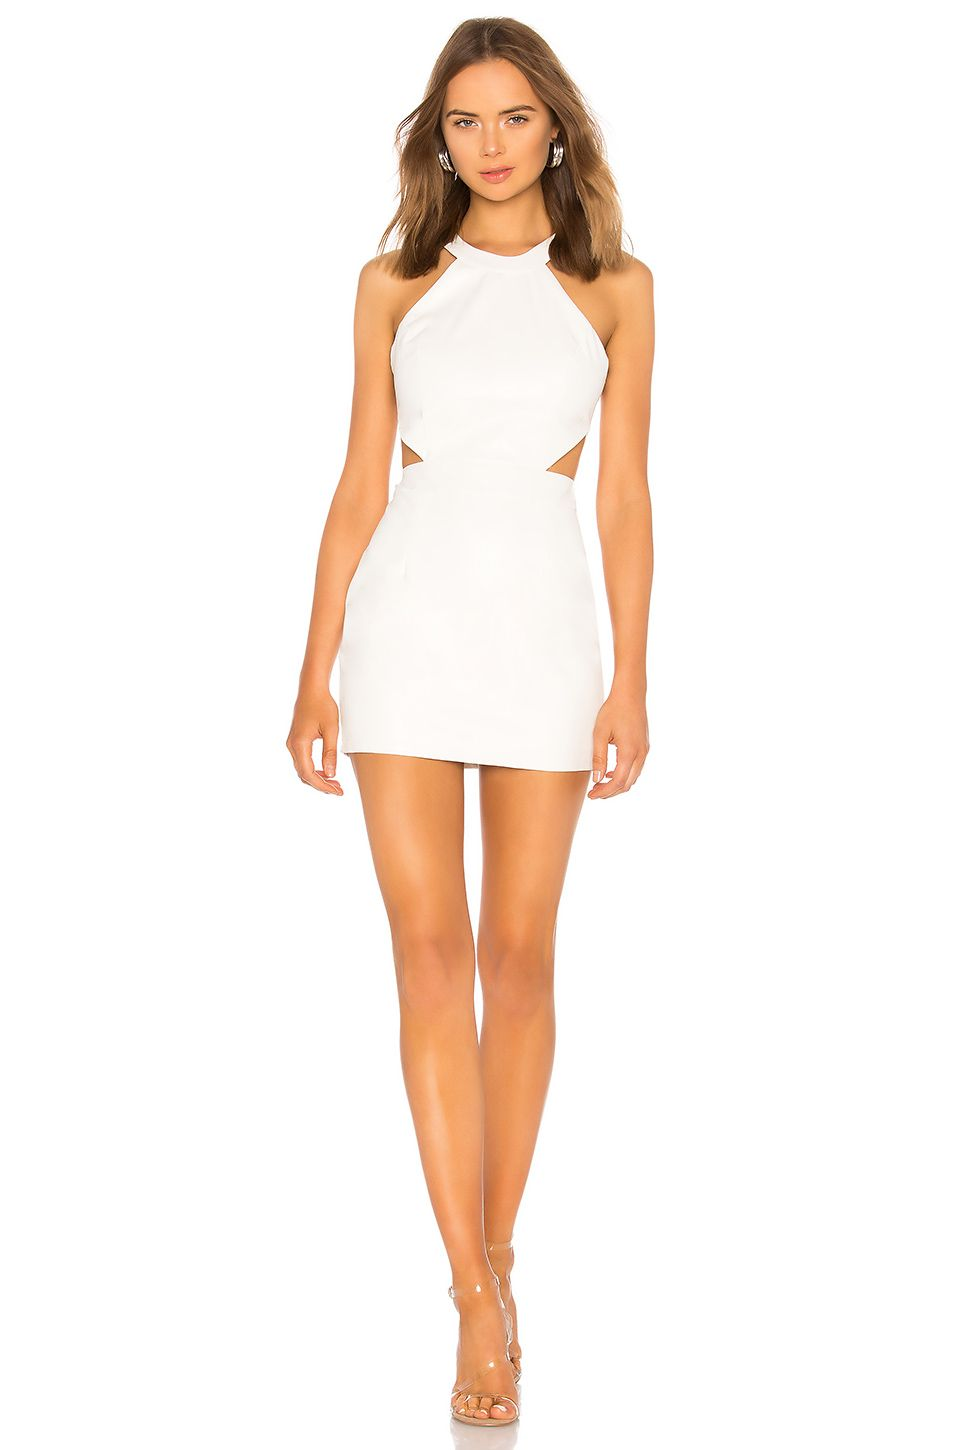 By The Way Willa Faux Leather Mini Dress In White Mini Dress Leather Dress Fashion Tight Mini Dress [ 1450 x 960 Pixel ]